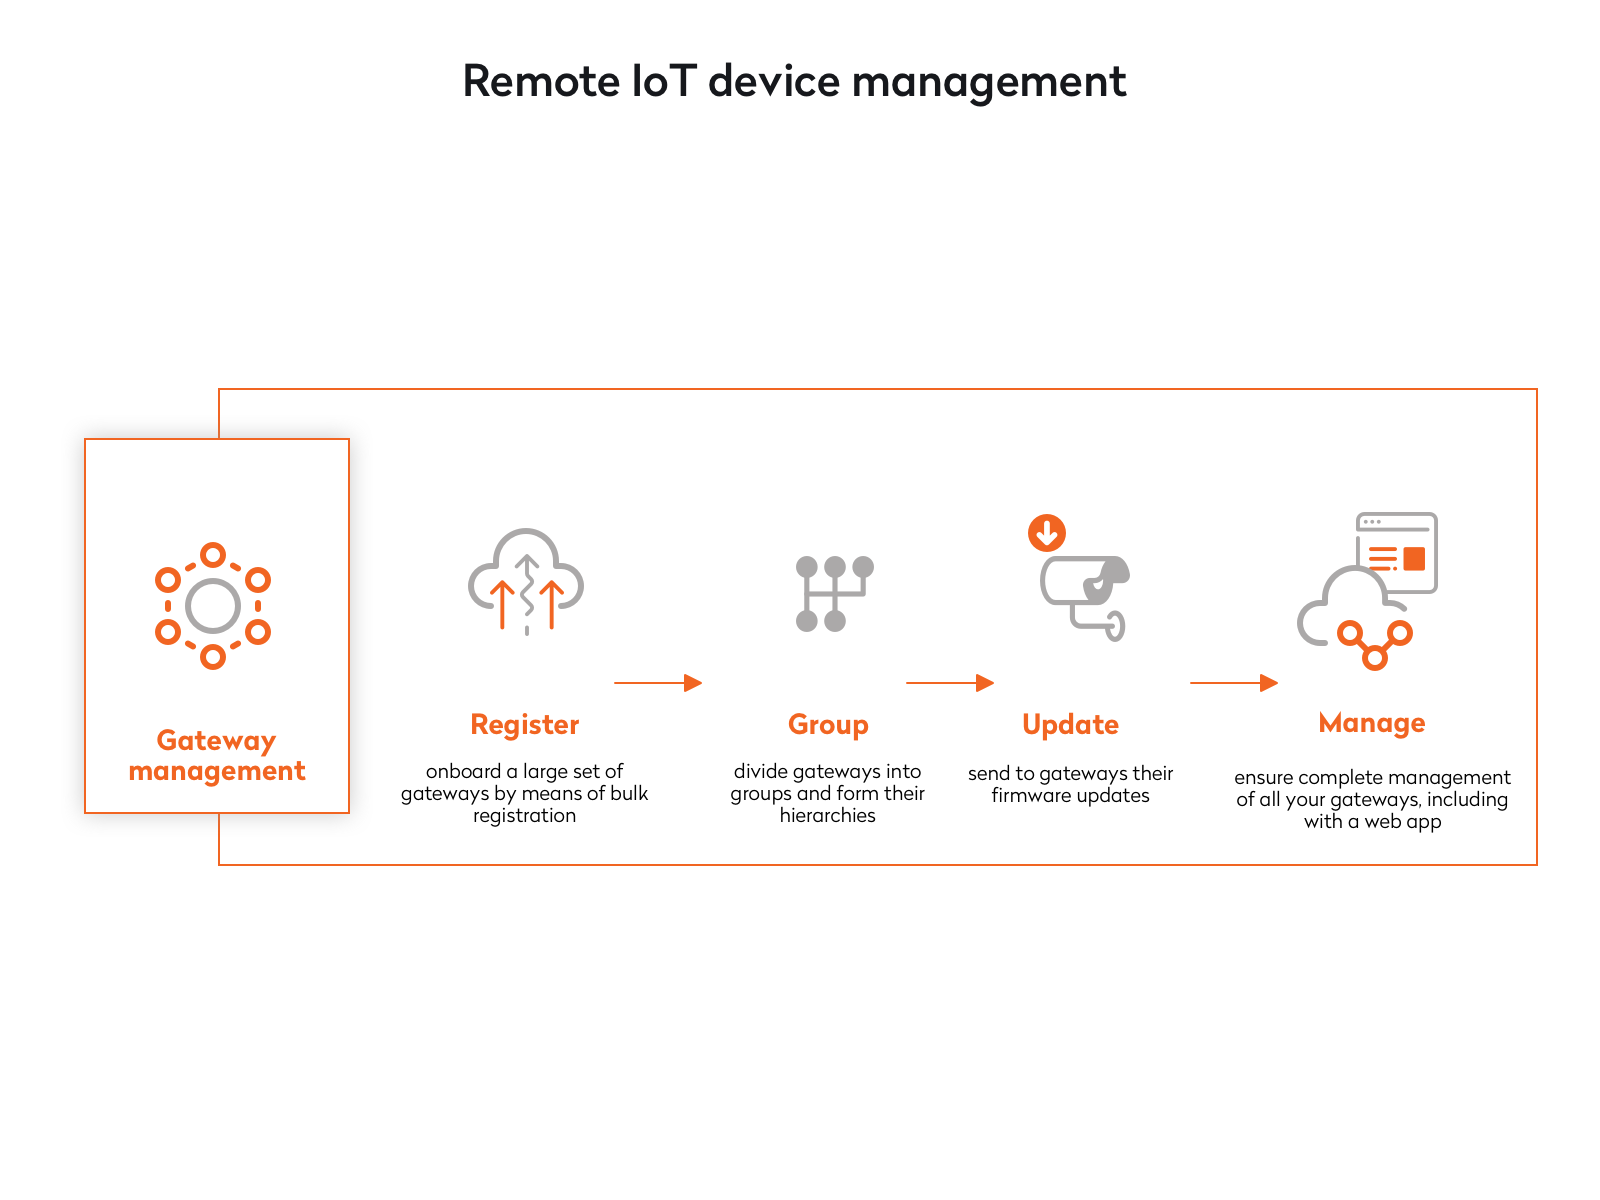 remote iot device management